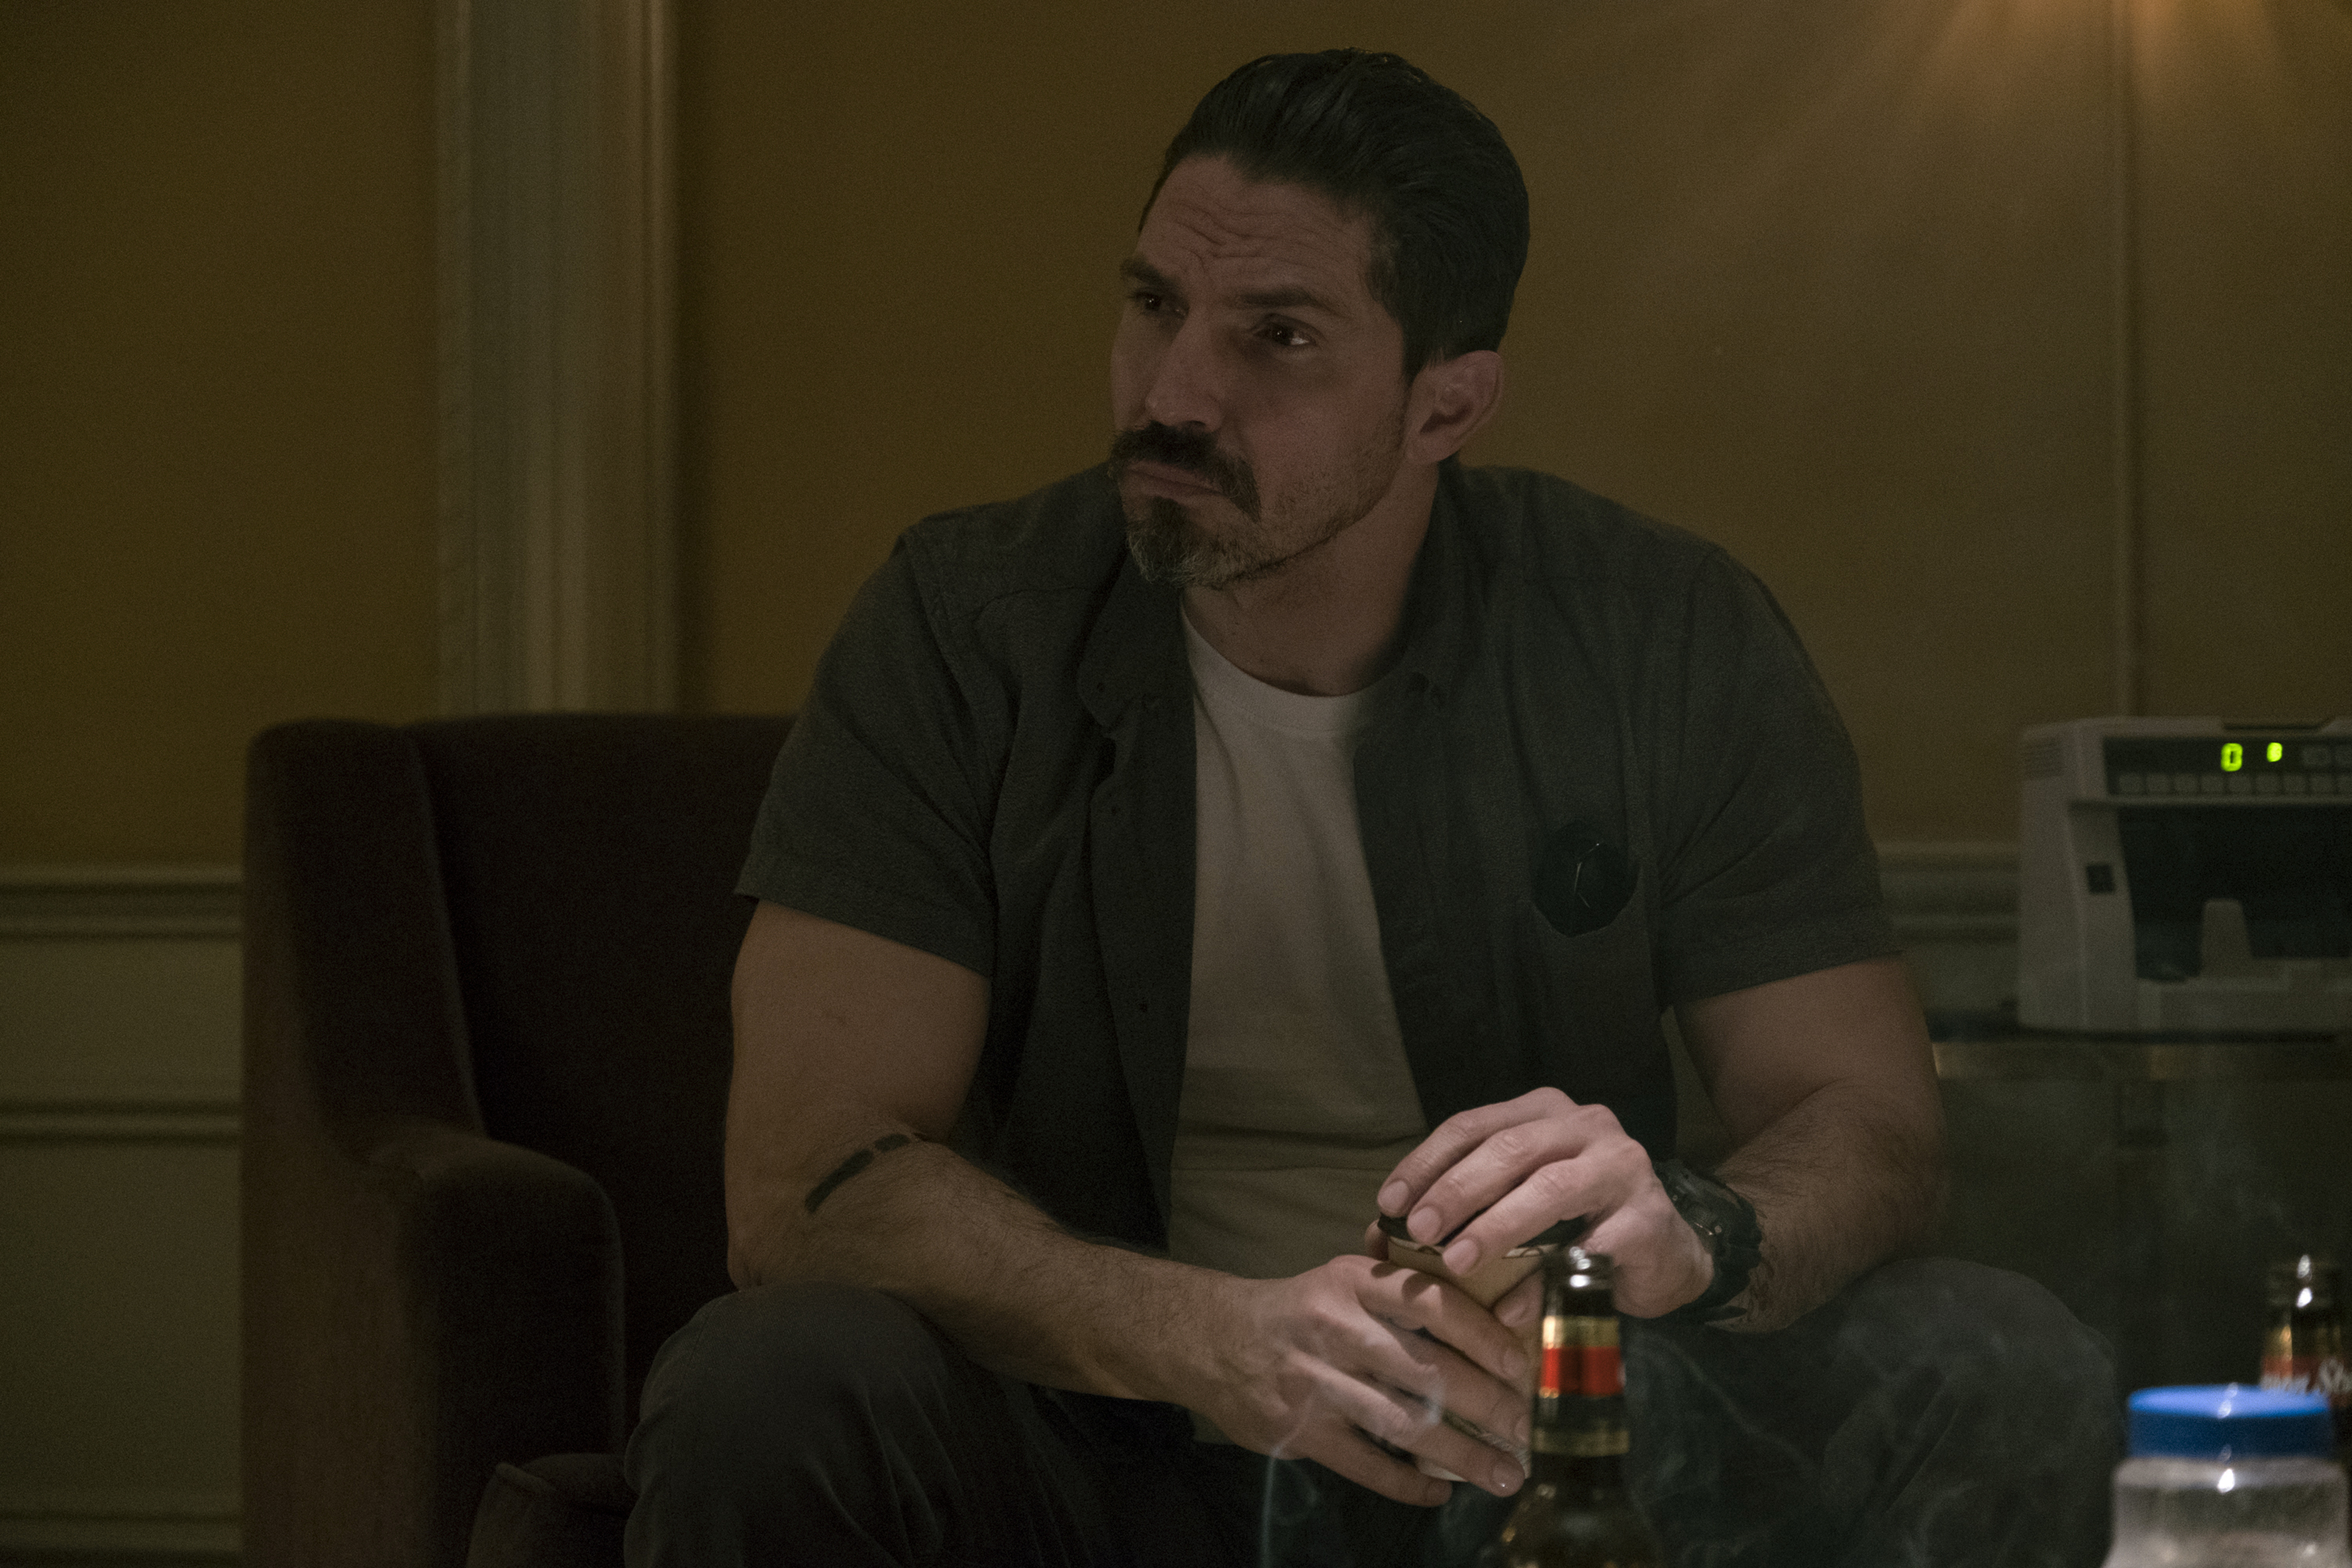 Actor Maurice Compte On New Movie 'Den of Thieves' and How 'Mayans MC' Is Not Just a 'Sons of Anarchy' Spin-Off